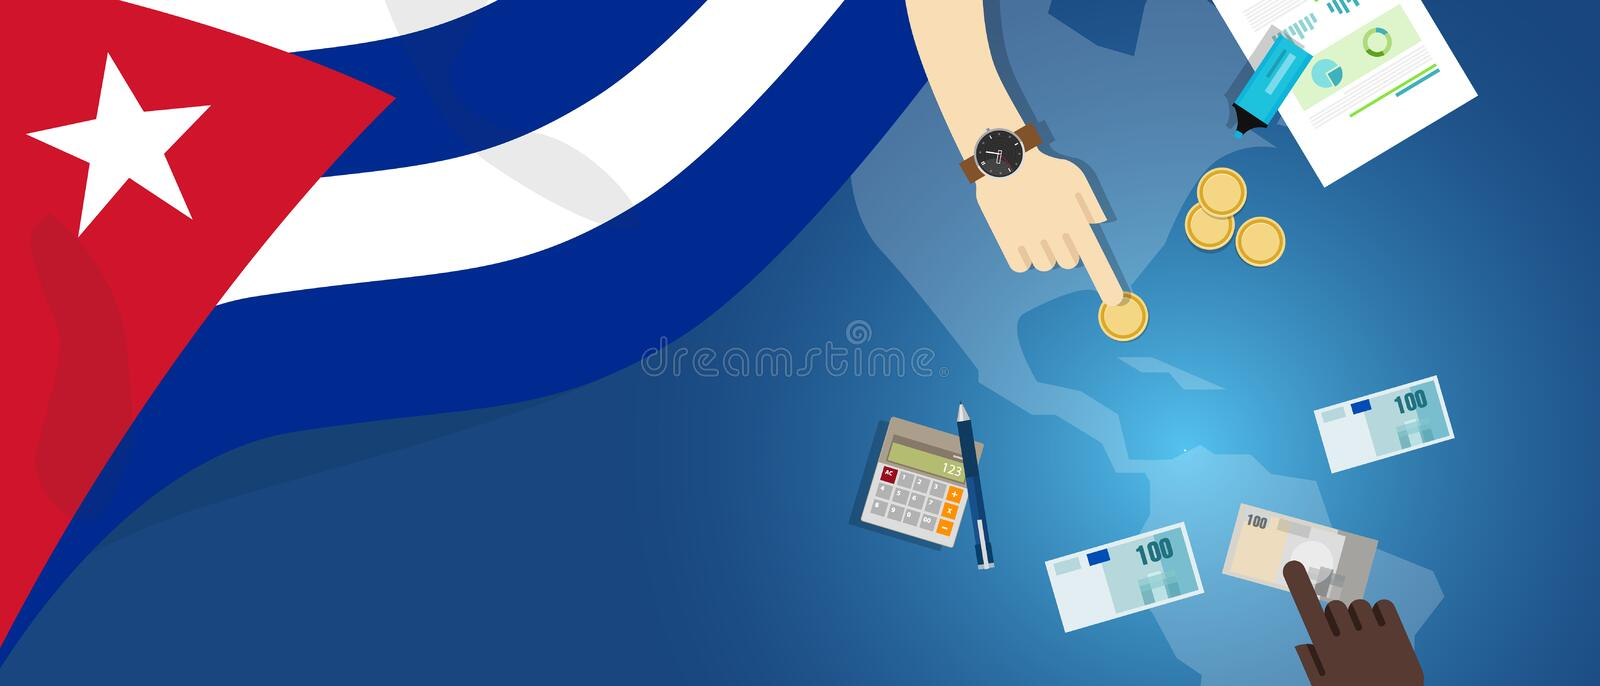 Cuba Cuban economy fiscal money trade concept illustration of financial banking budget with flag map and currency. Vector stock illustration